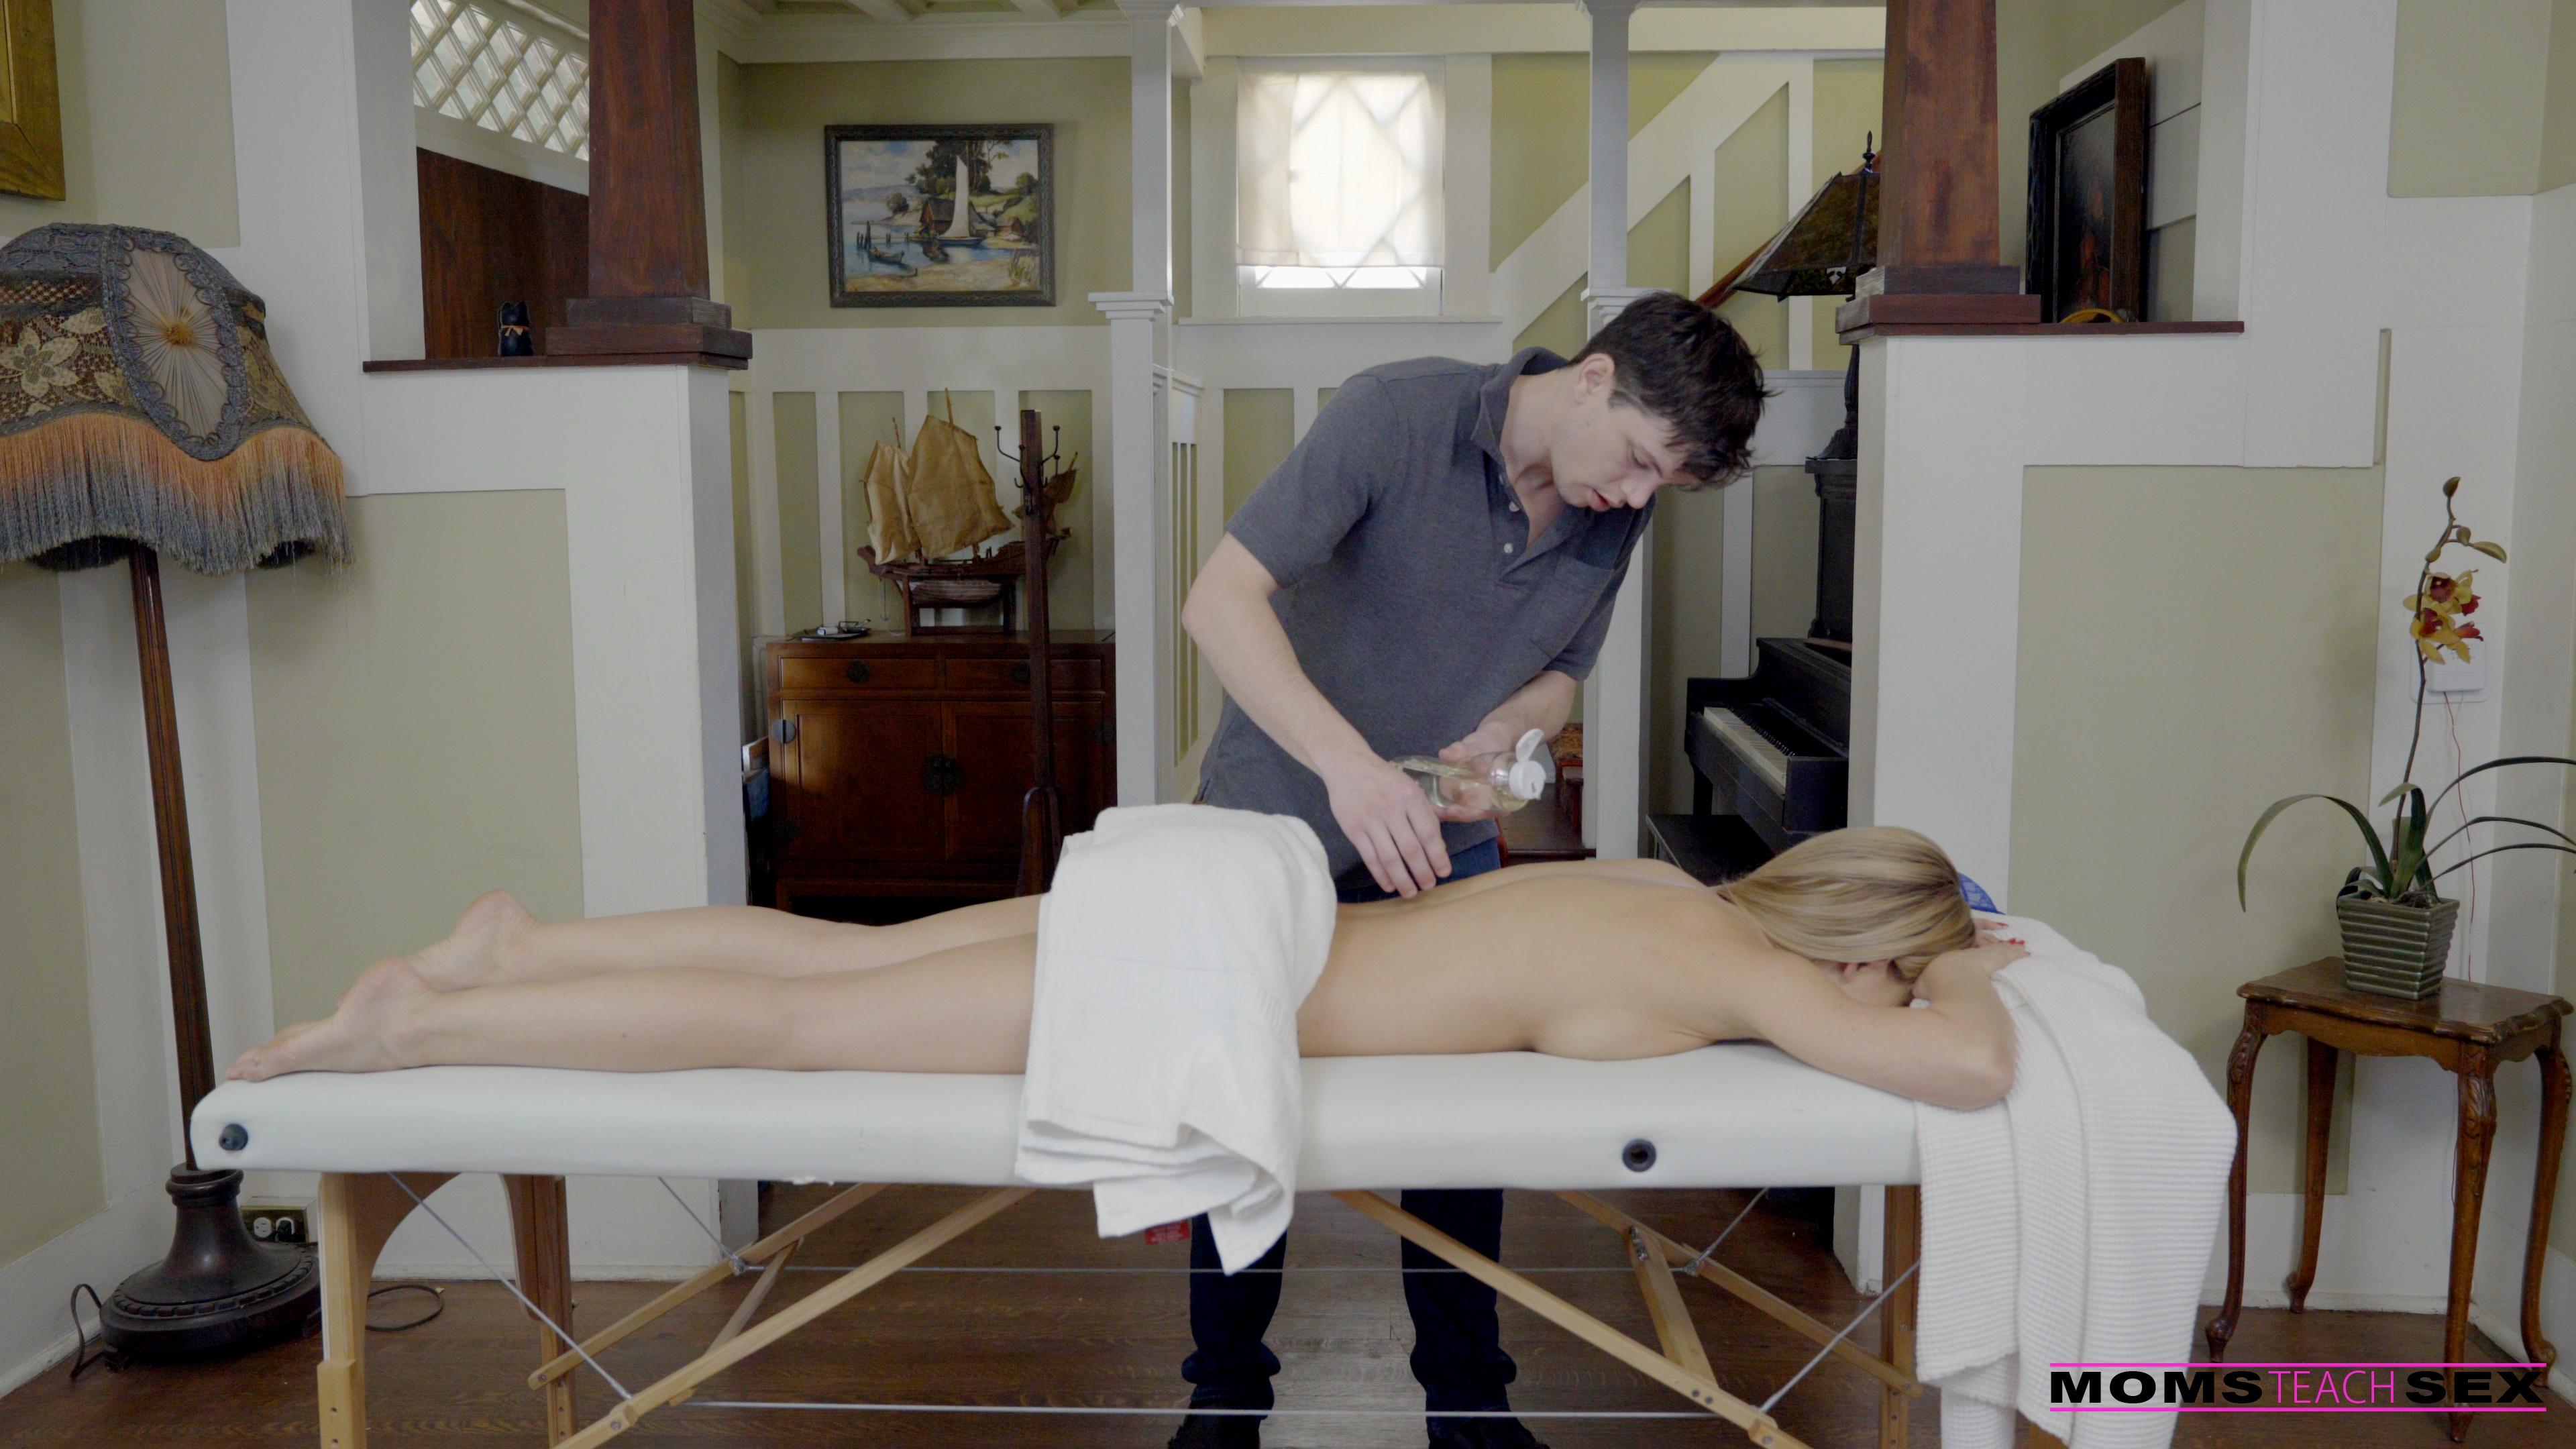 moms teach sex mothers day massage s8 e4 featuring